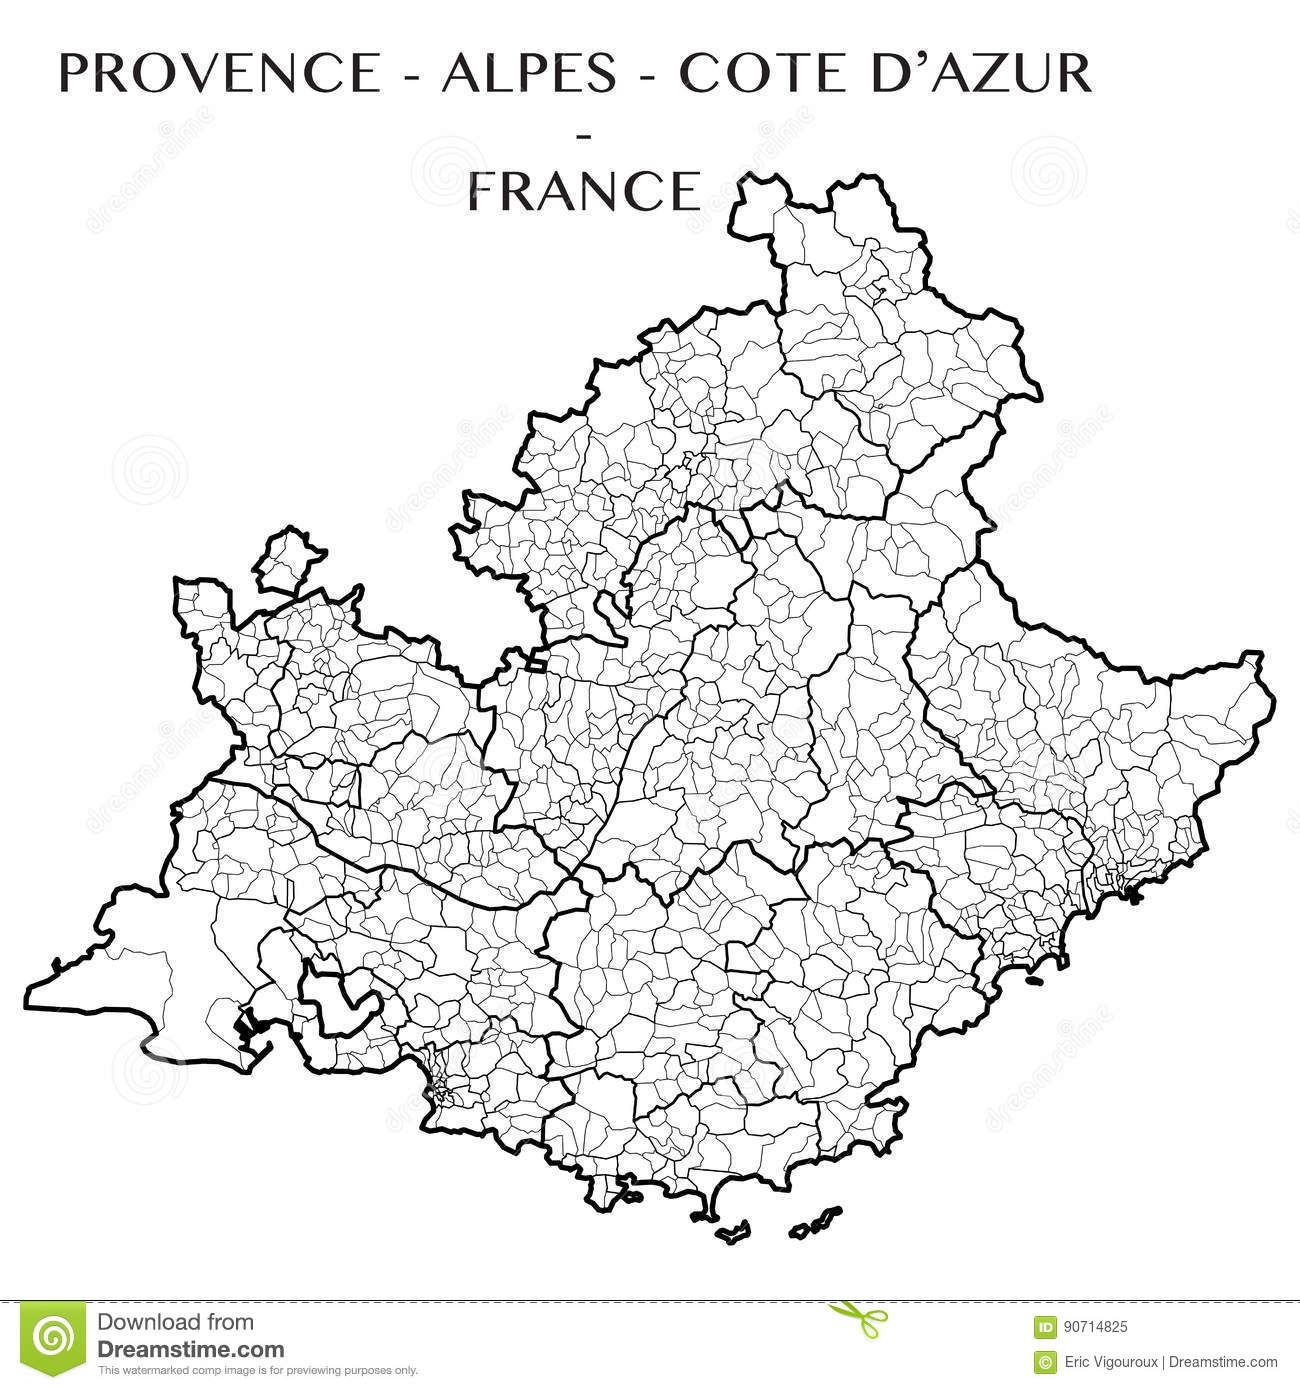 Leboncoin Provence Alpes Cote D Azur Vector Map Of The Region Provence Alpes Cotes Dazur